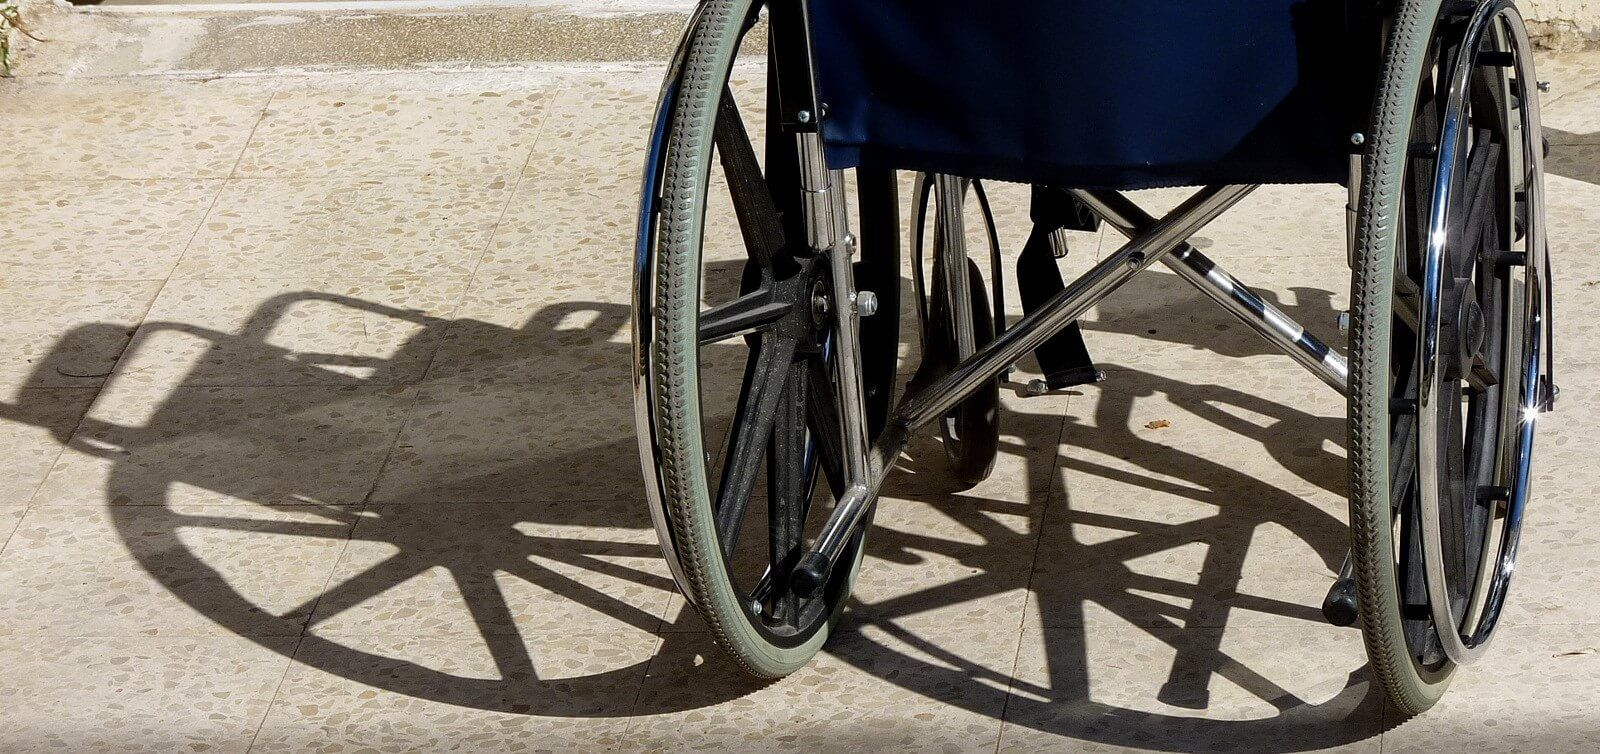 /wp-content/uploads/2016/09/wheelchair-tracking-header.jpg